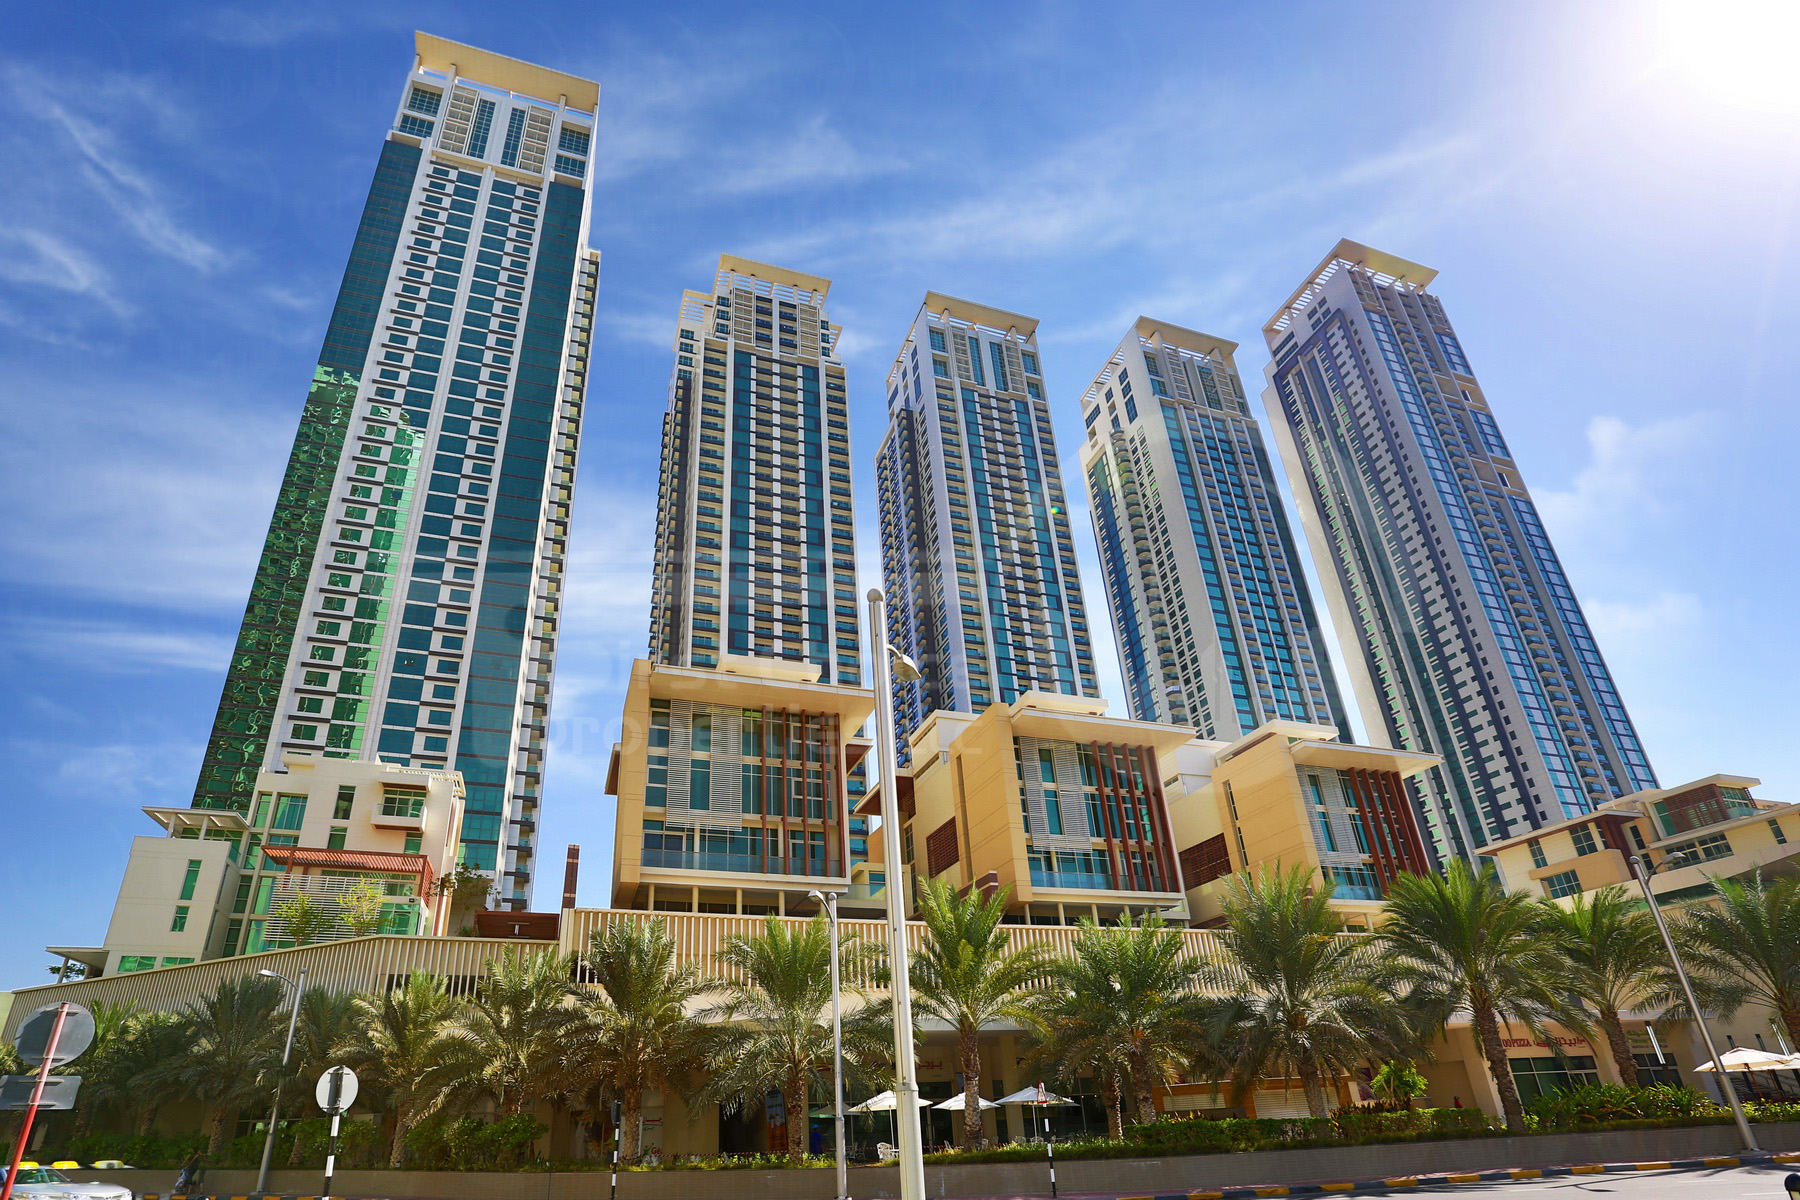 Studio - 1BR - 2BR - 3BR - 4BR Apartment - Abu Dhabi - UAE - Al Reem Island - Marina Square - Outside View (52).JPG